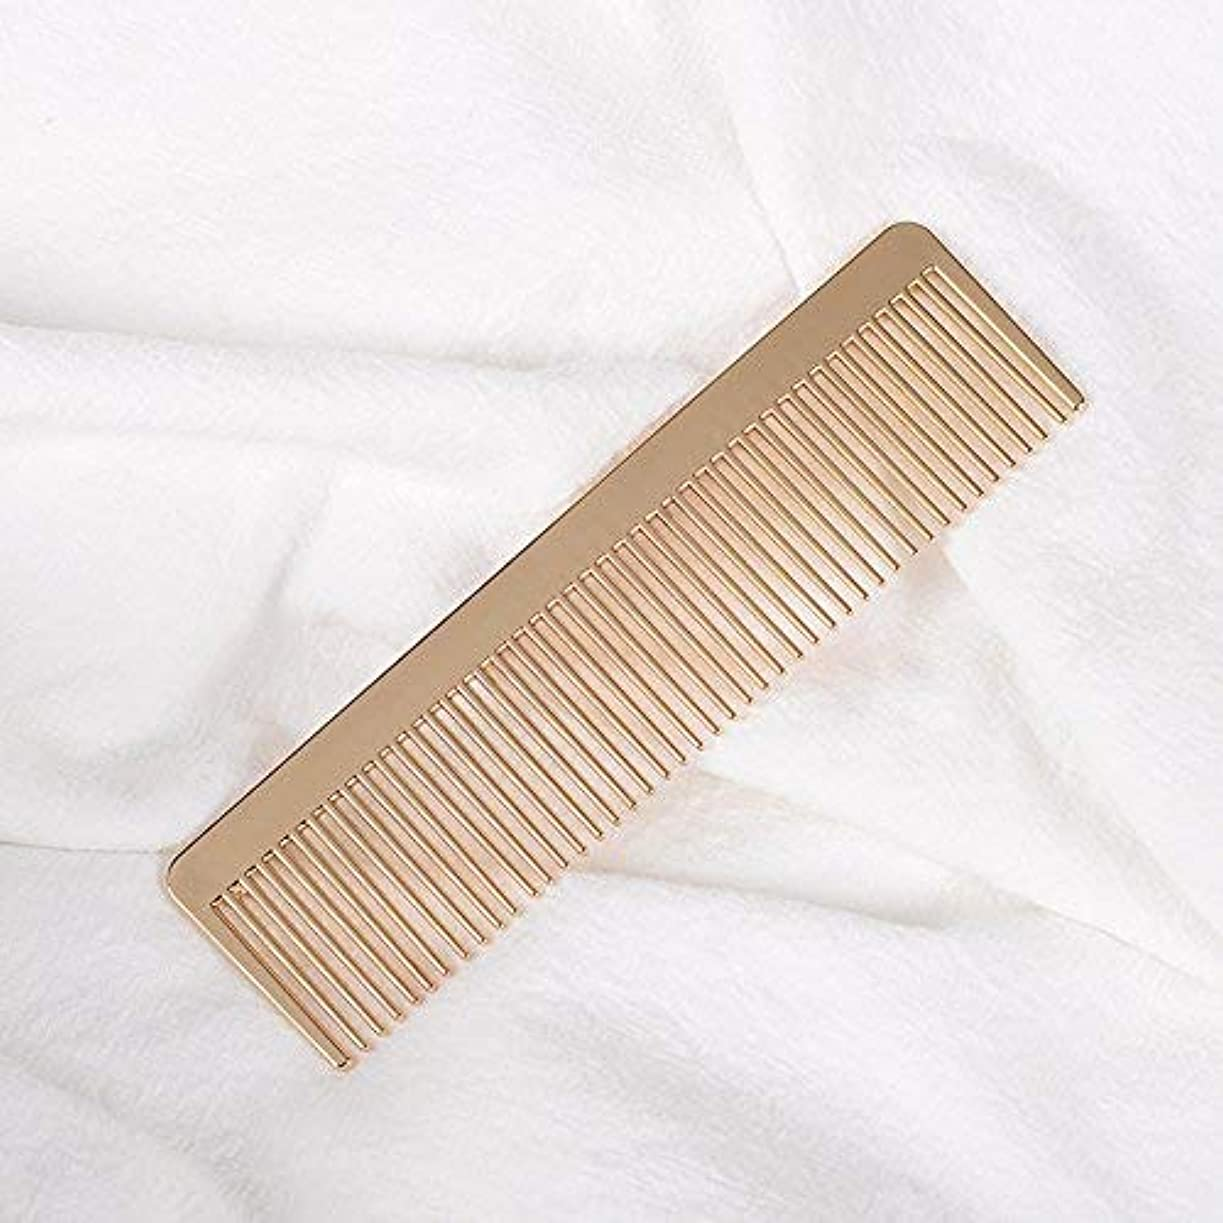 Grtdrm Portable Metal Comb, Minimalist Pocket Golden Hair Comb for Women Men Unisex [並行輸入品]